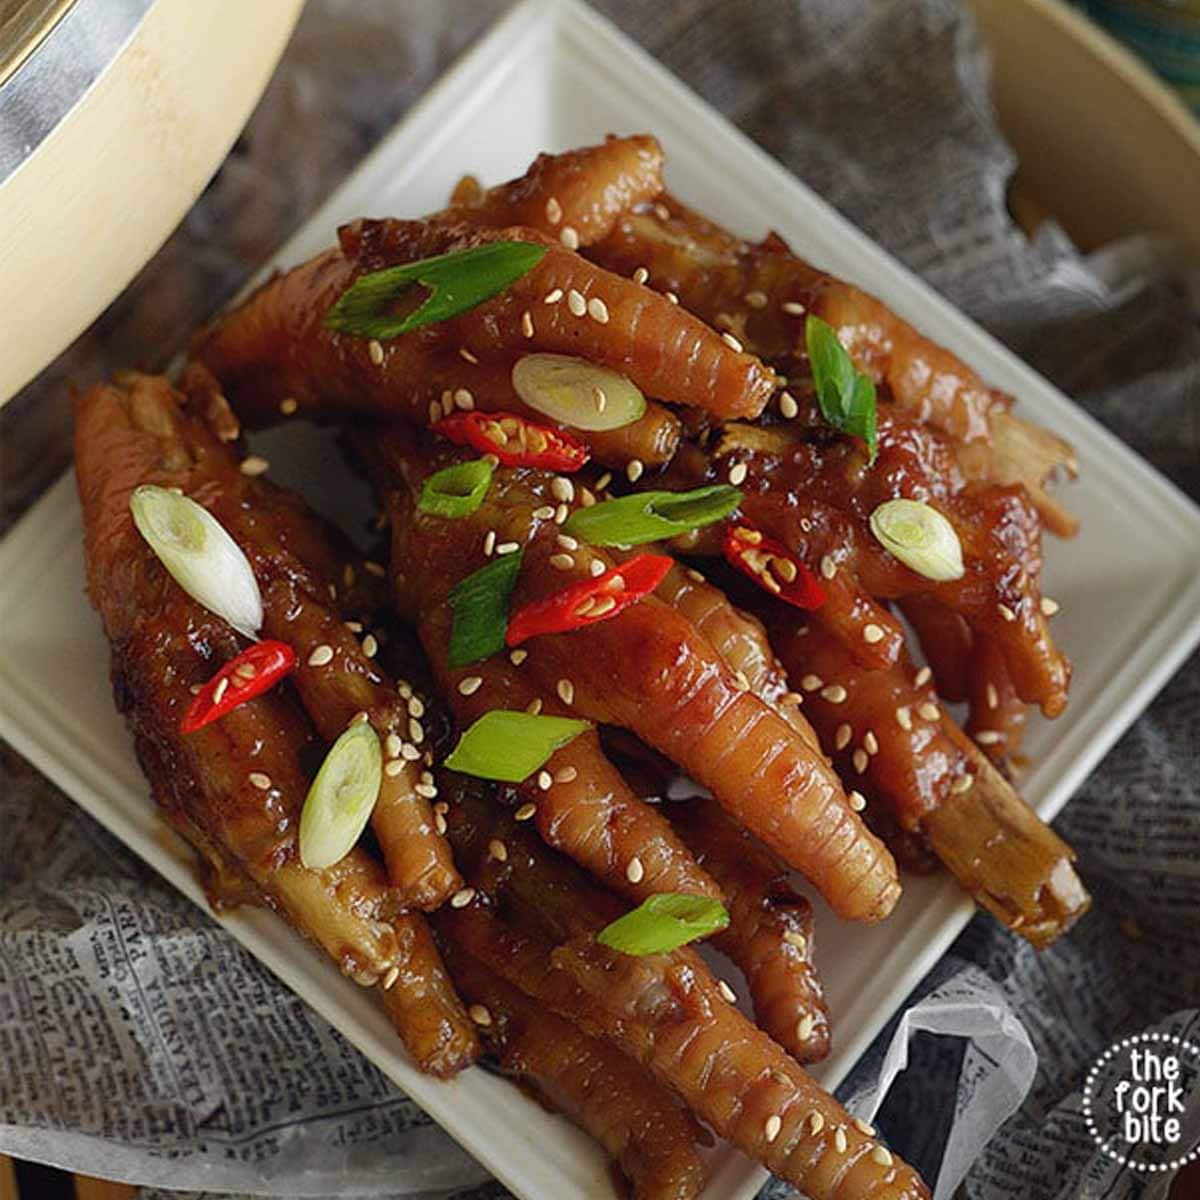 These Chicken Feet recipe are braised in a flavorful, umami packed liquid that rival the dim sum or Yum Cha restaurant.